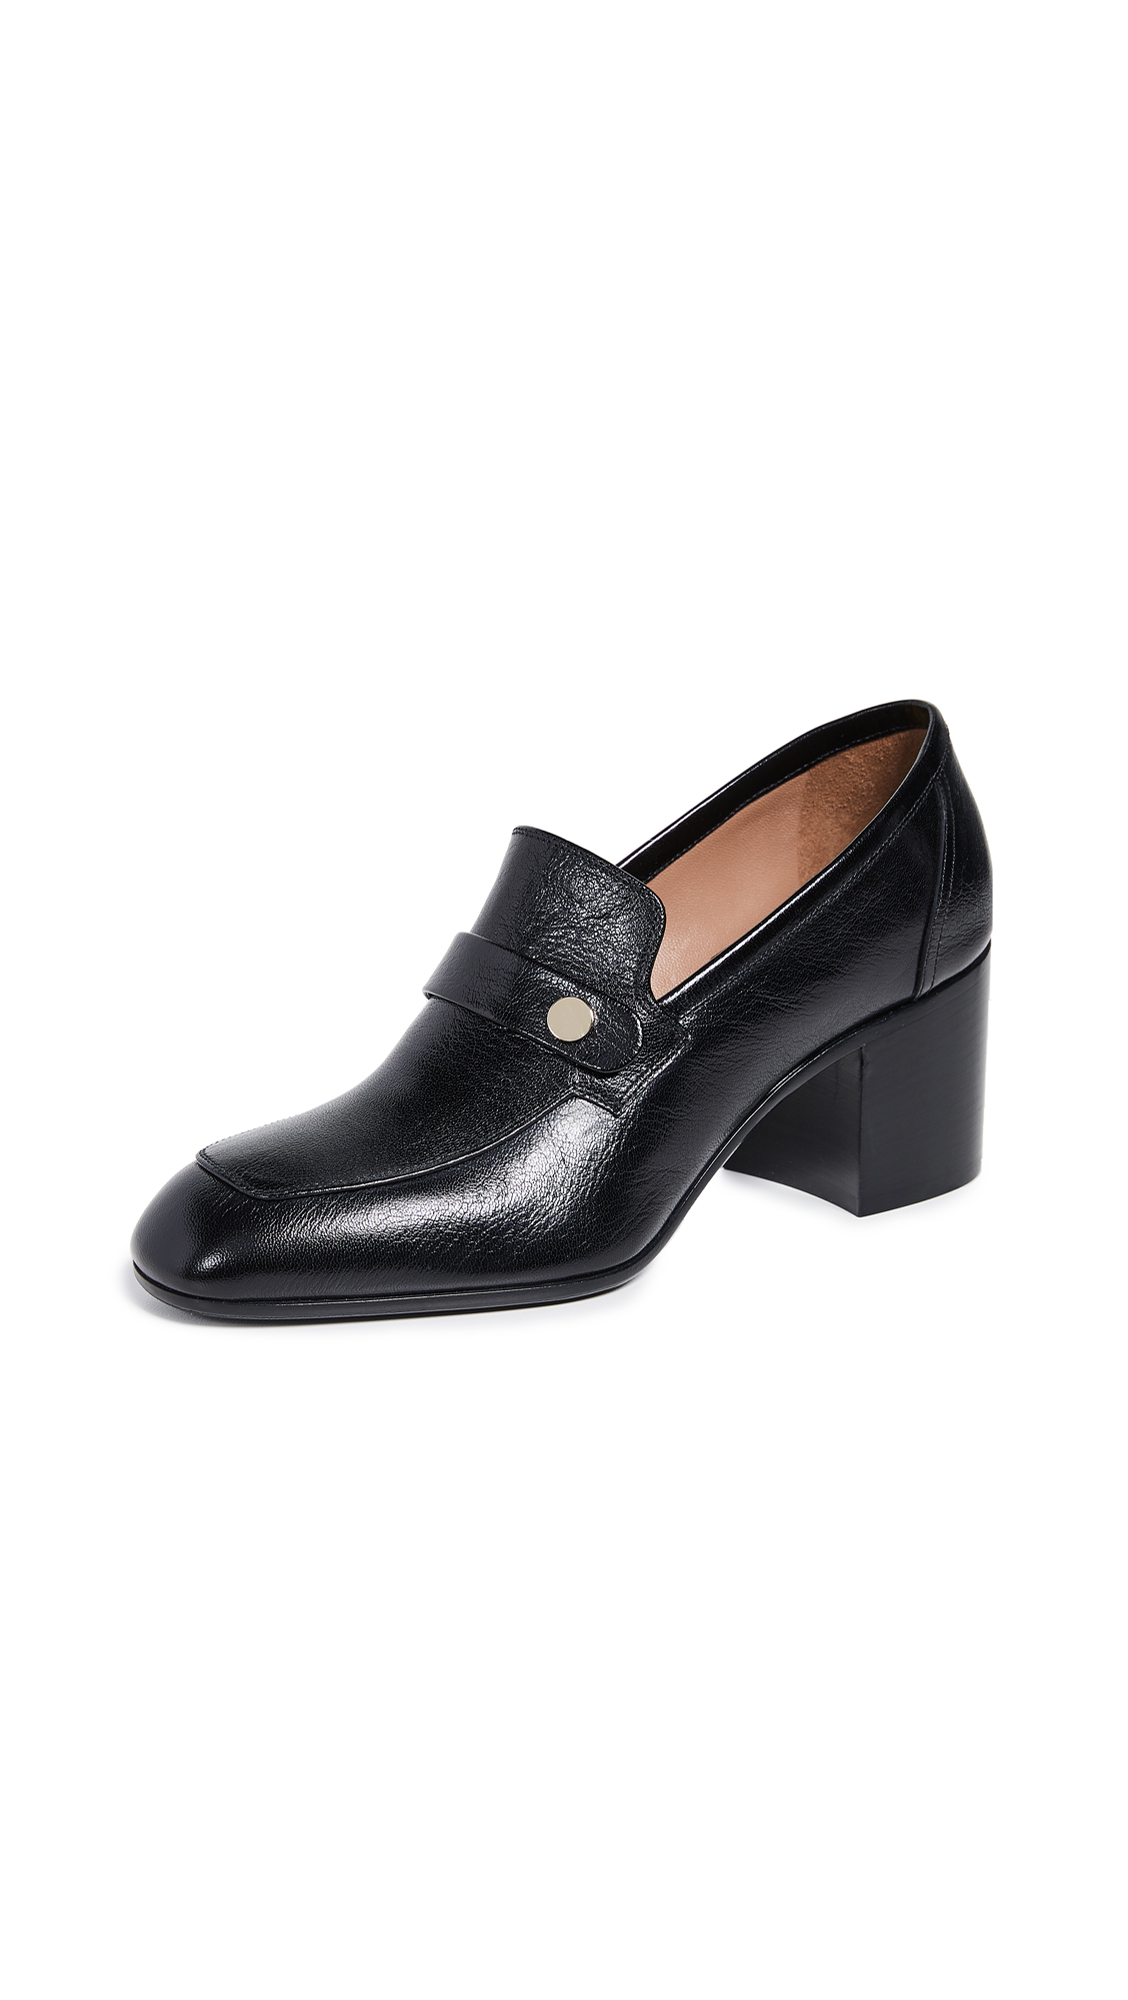 Laurence Dacade Tracy Heeled Loafers - Black